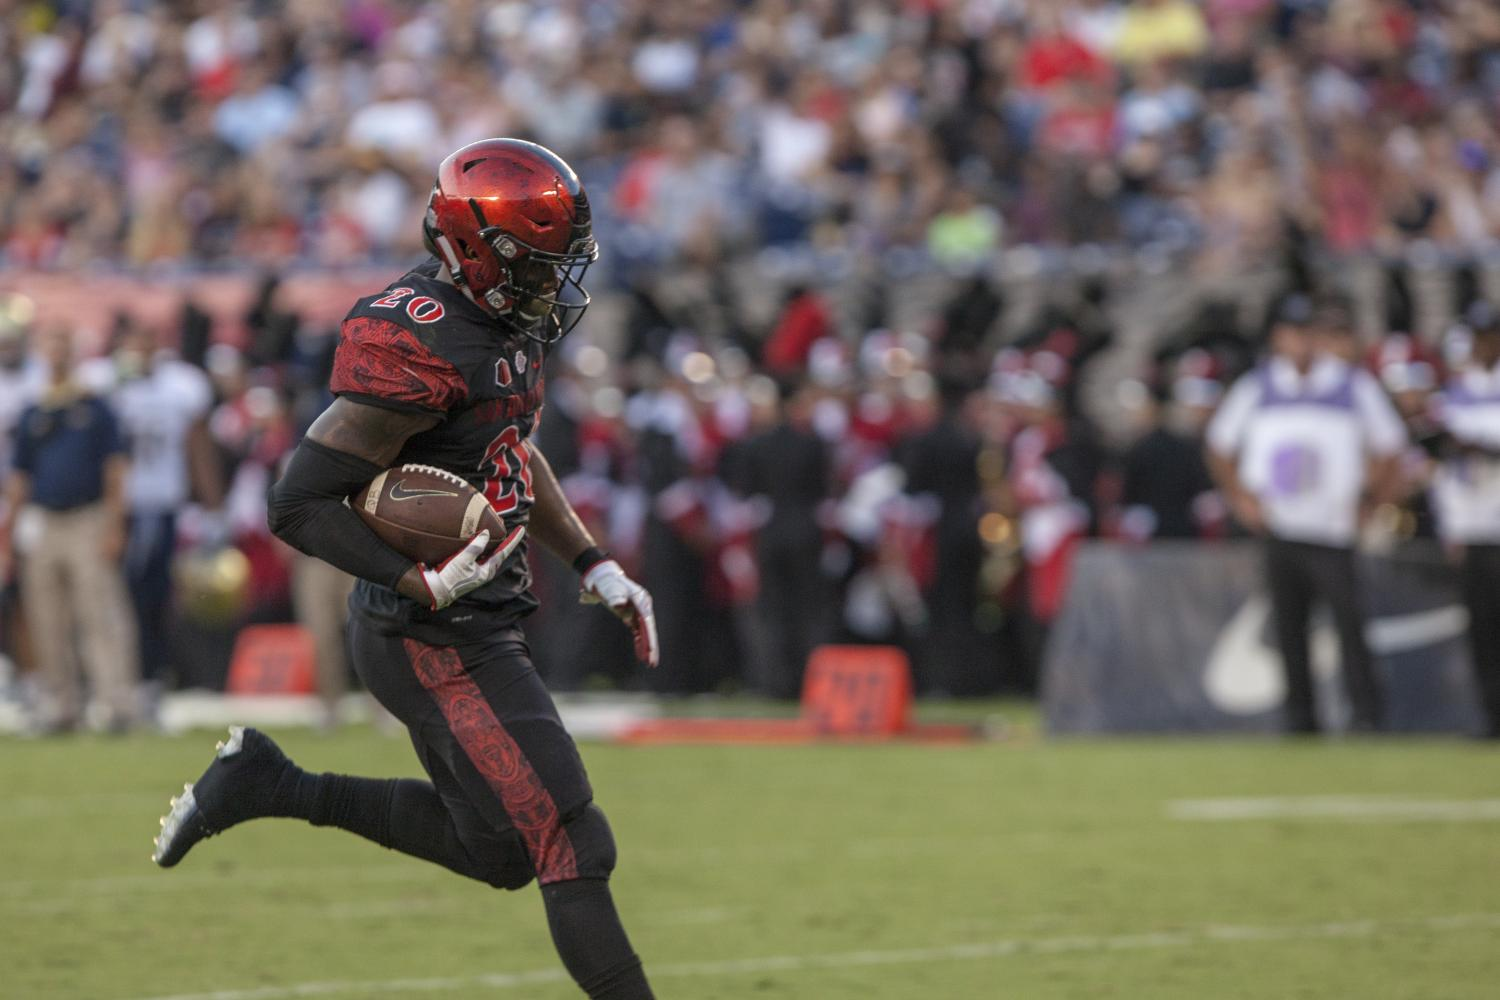 Senior+running+back+Rashaad+Penny+prances+for+a+touchdown+during+SDSU%27s+38-17+win+over+UC+Davis.